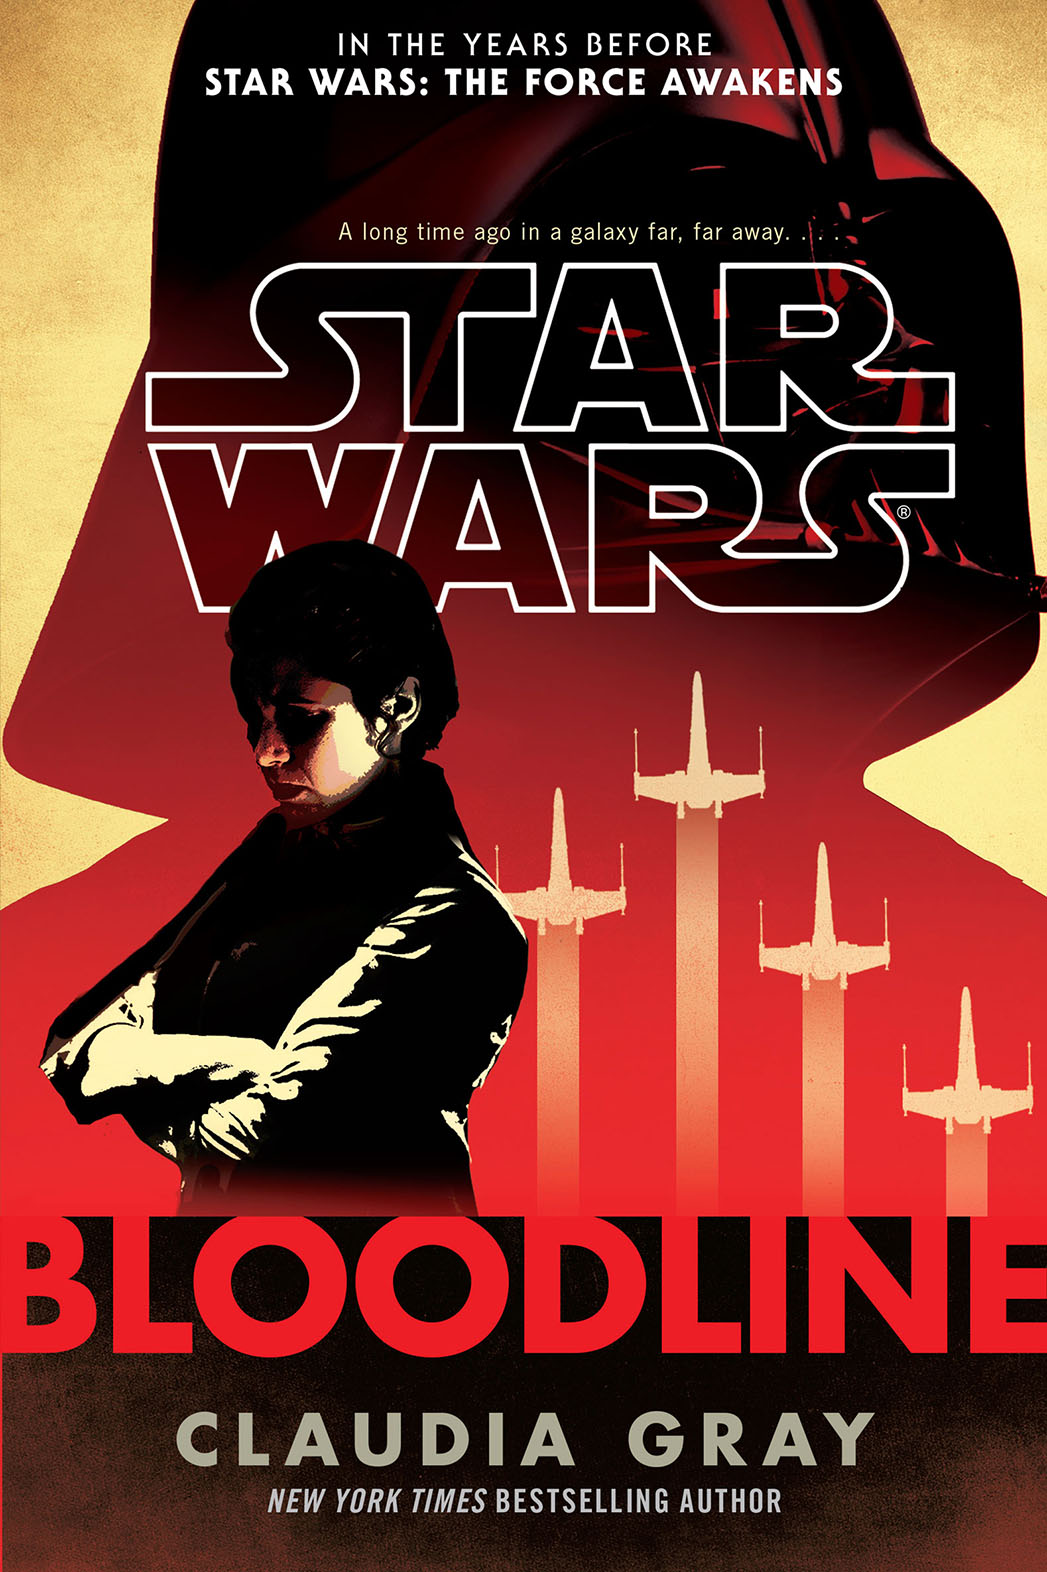 Star Wars Bloodline Cover - Publicity - P 2016